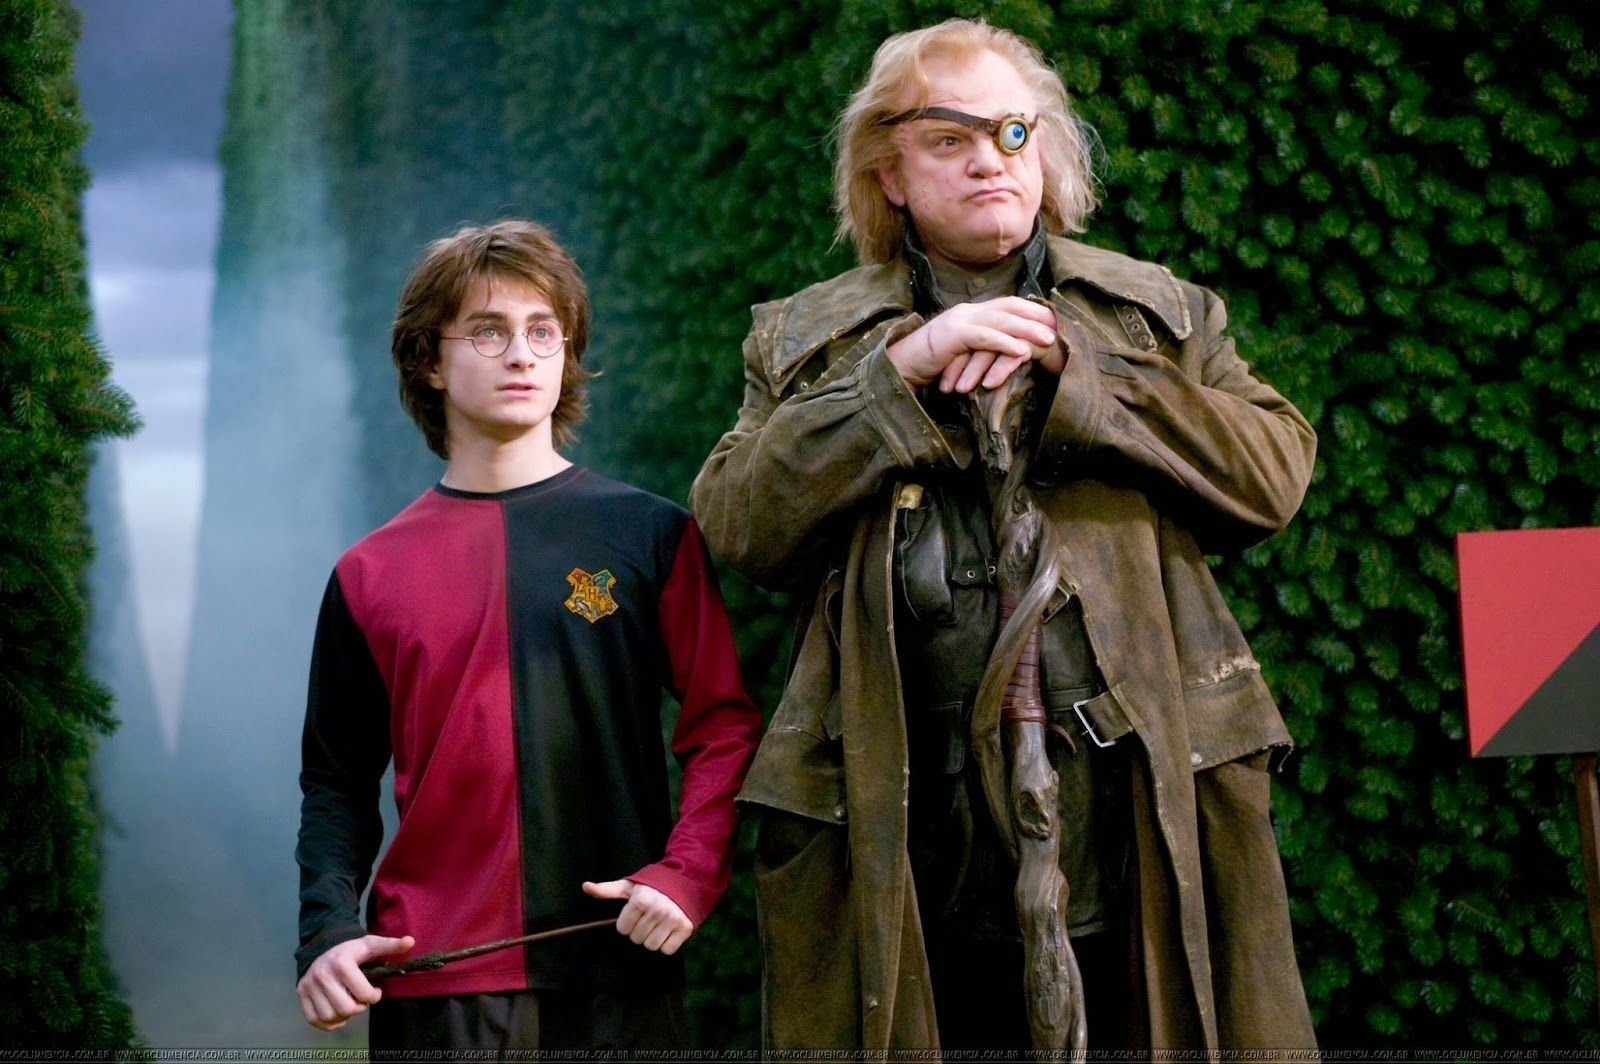 Harry Potter And The Goblet Of Fire I Wish This Was A Better Adaptation Still Love It Though Moody Harry Potter Harry Potter Goblet Harry Potter Movies